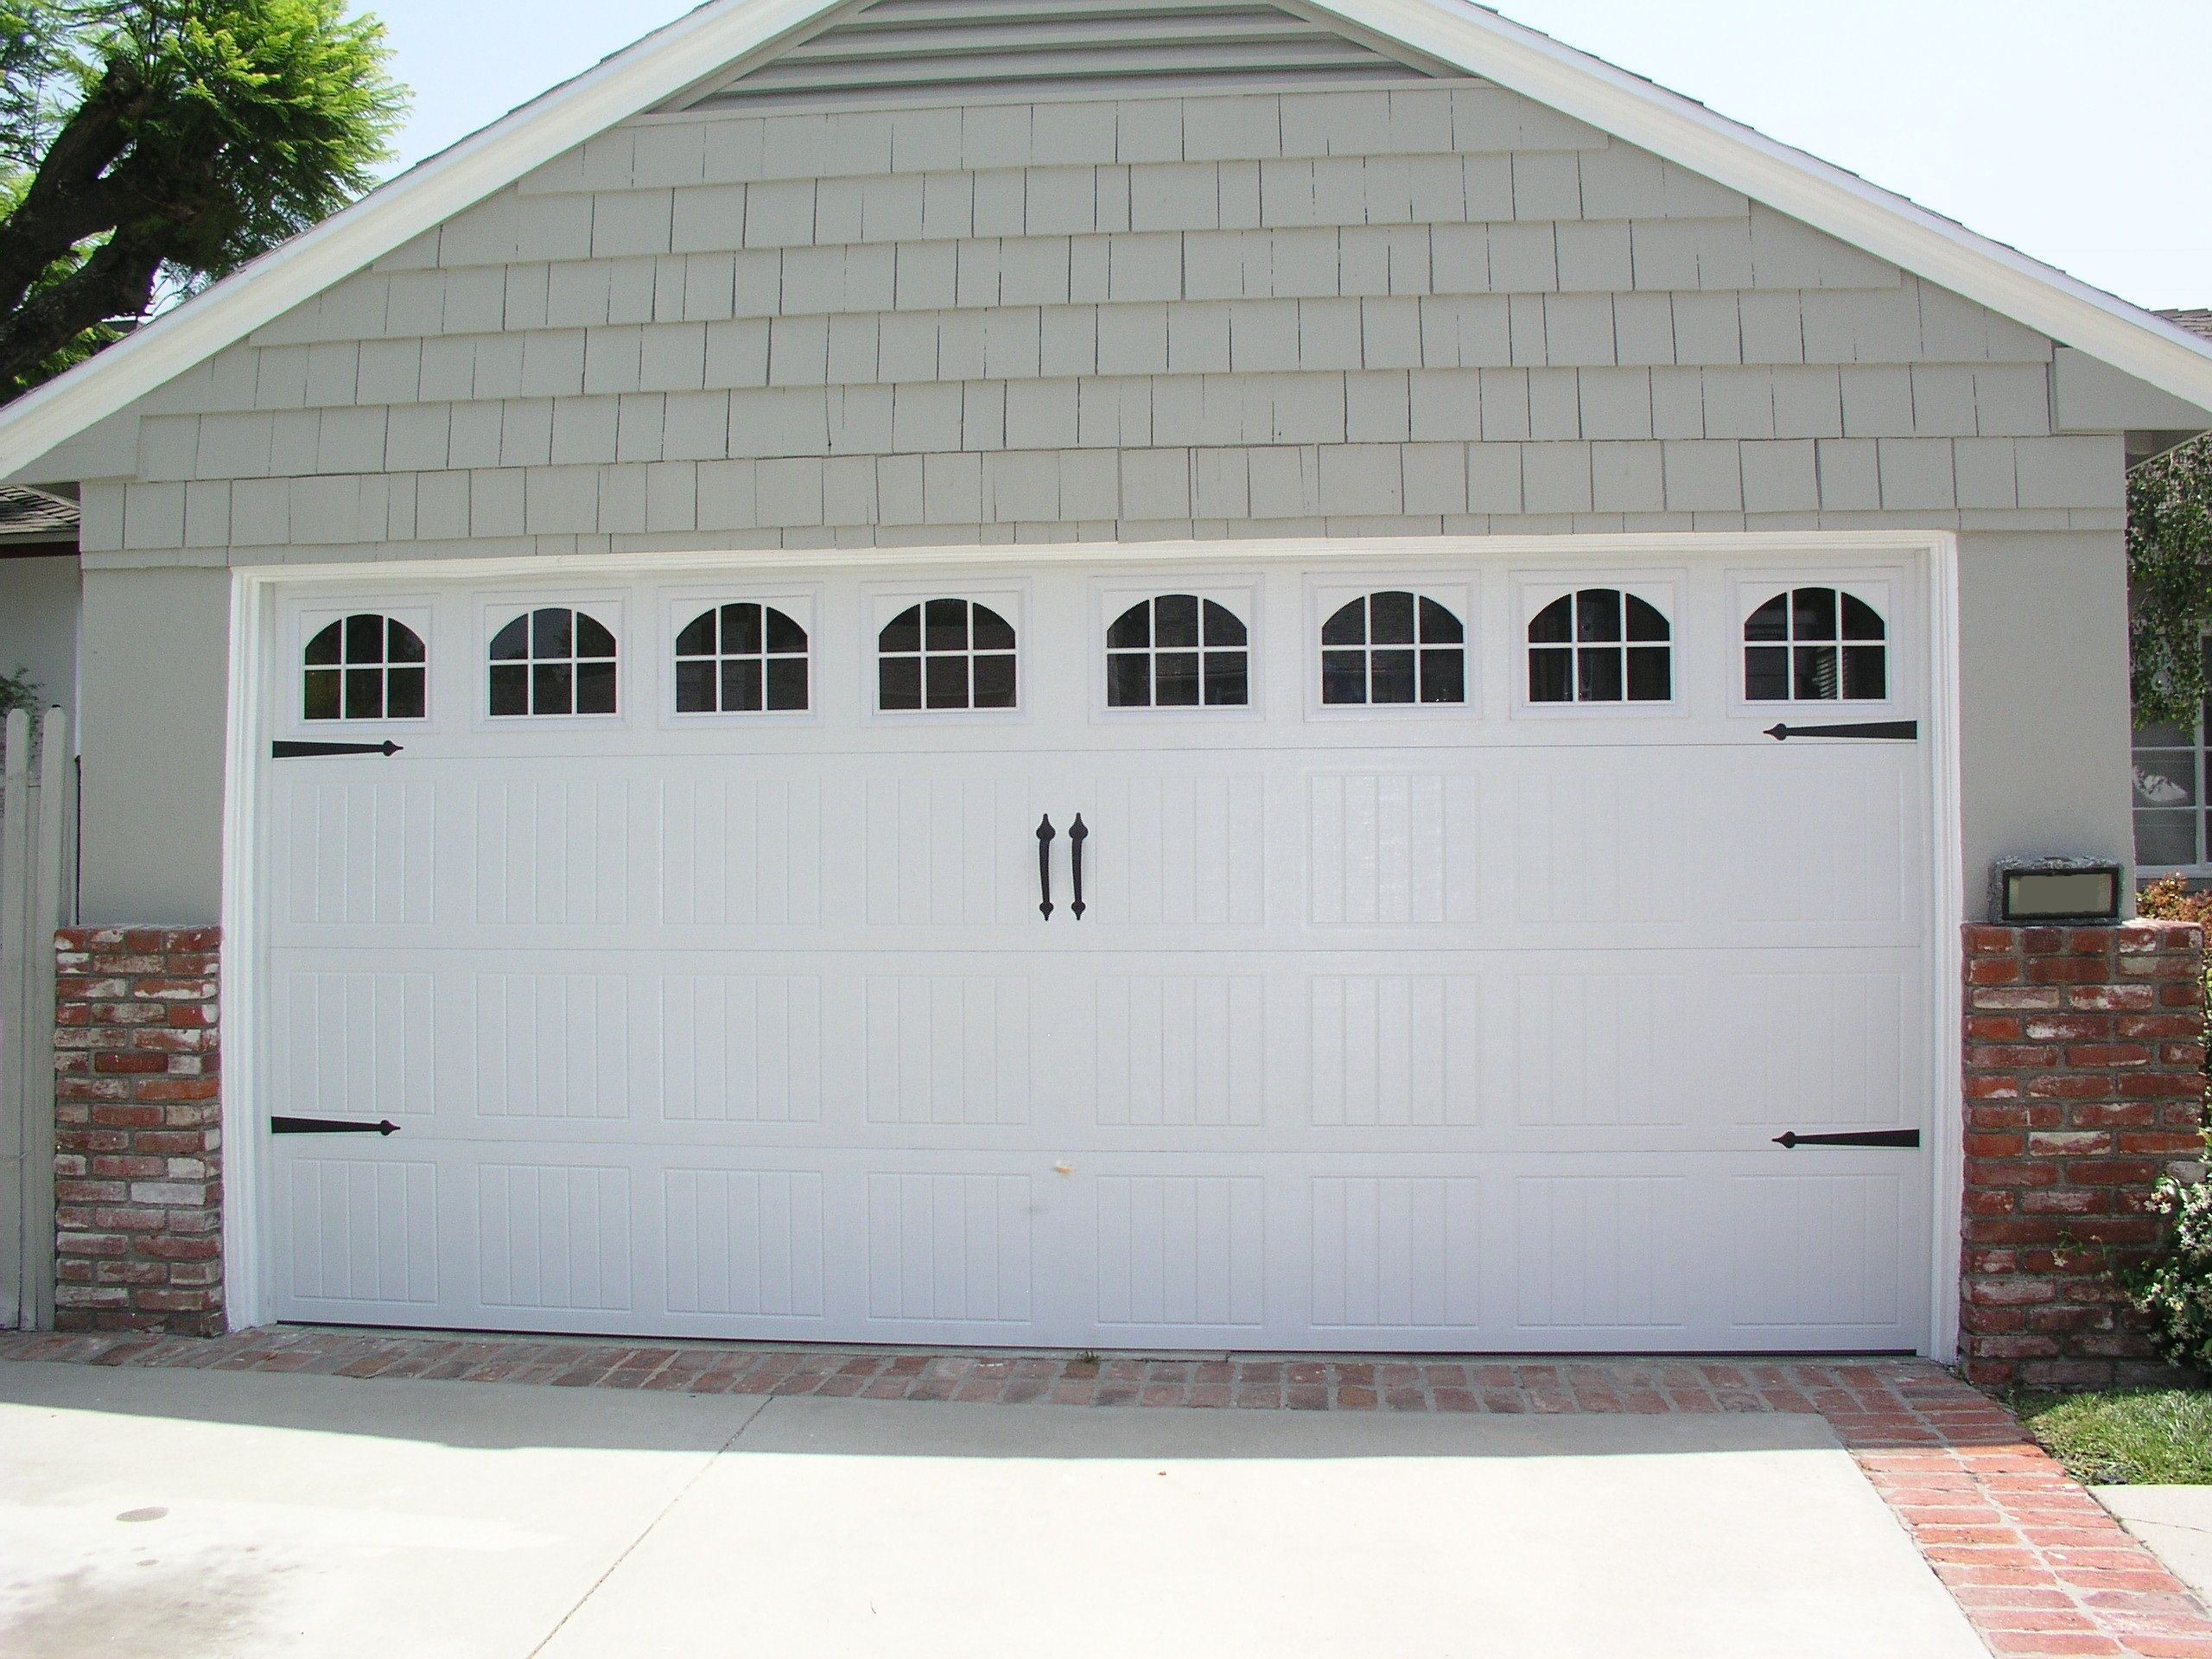 Wayne Dalton Sonoma White Cascade With Decorative Hardware Los Angeles Ca Photo Credit Agi Dyer Gara Garage Door Styles Garage Doors Garage Door Design